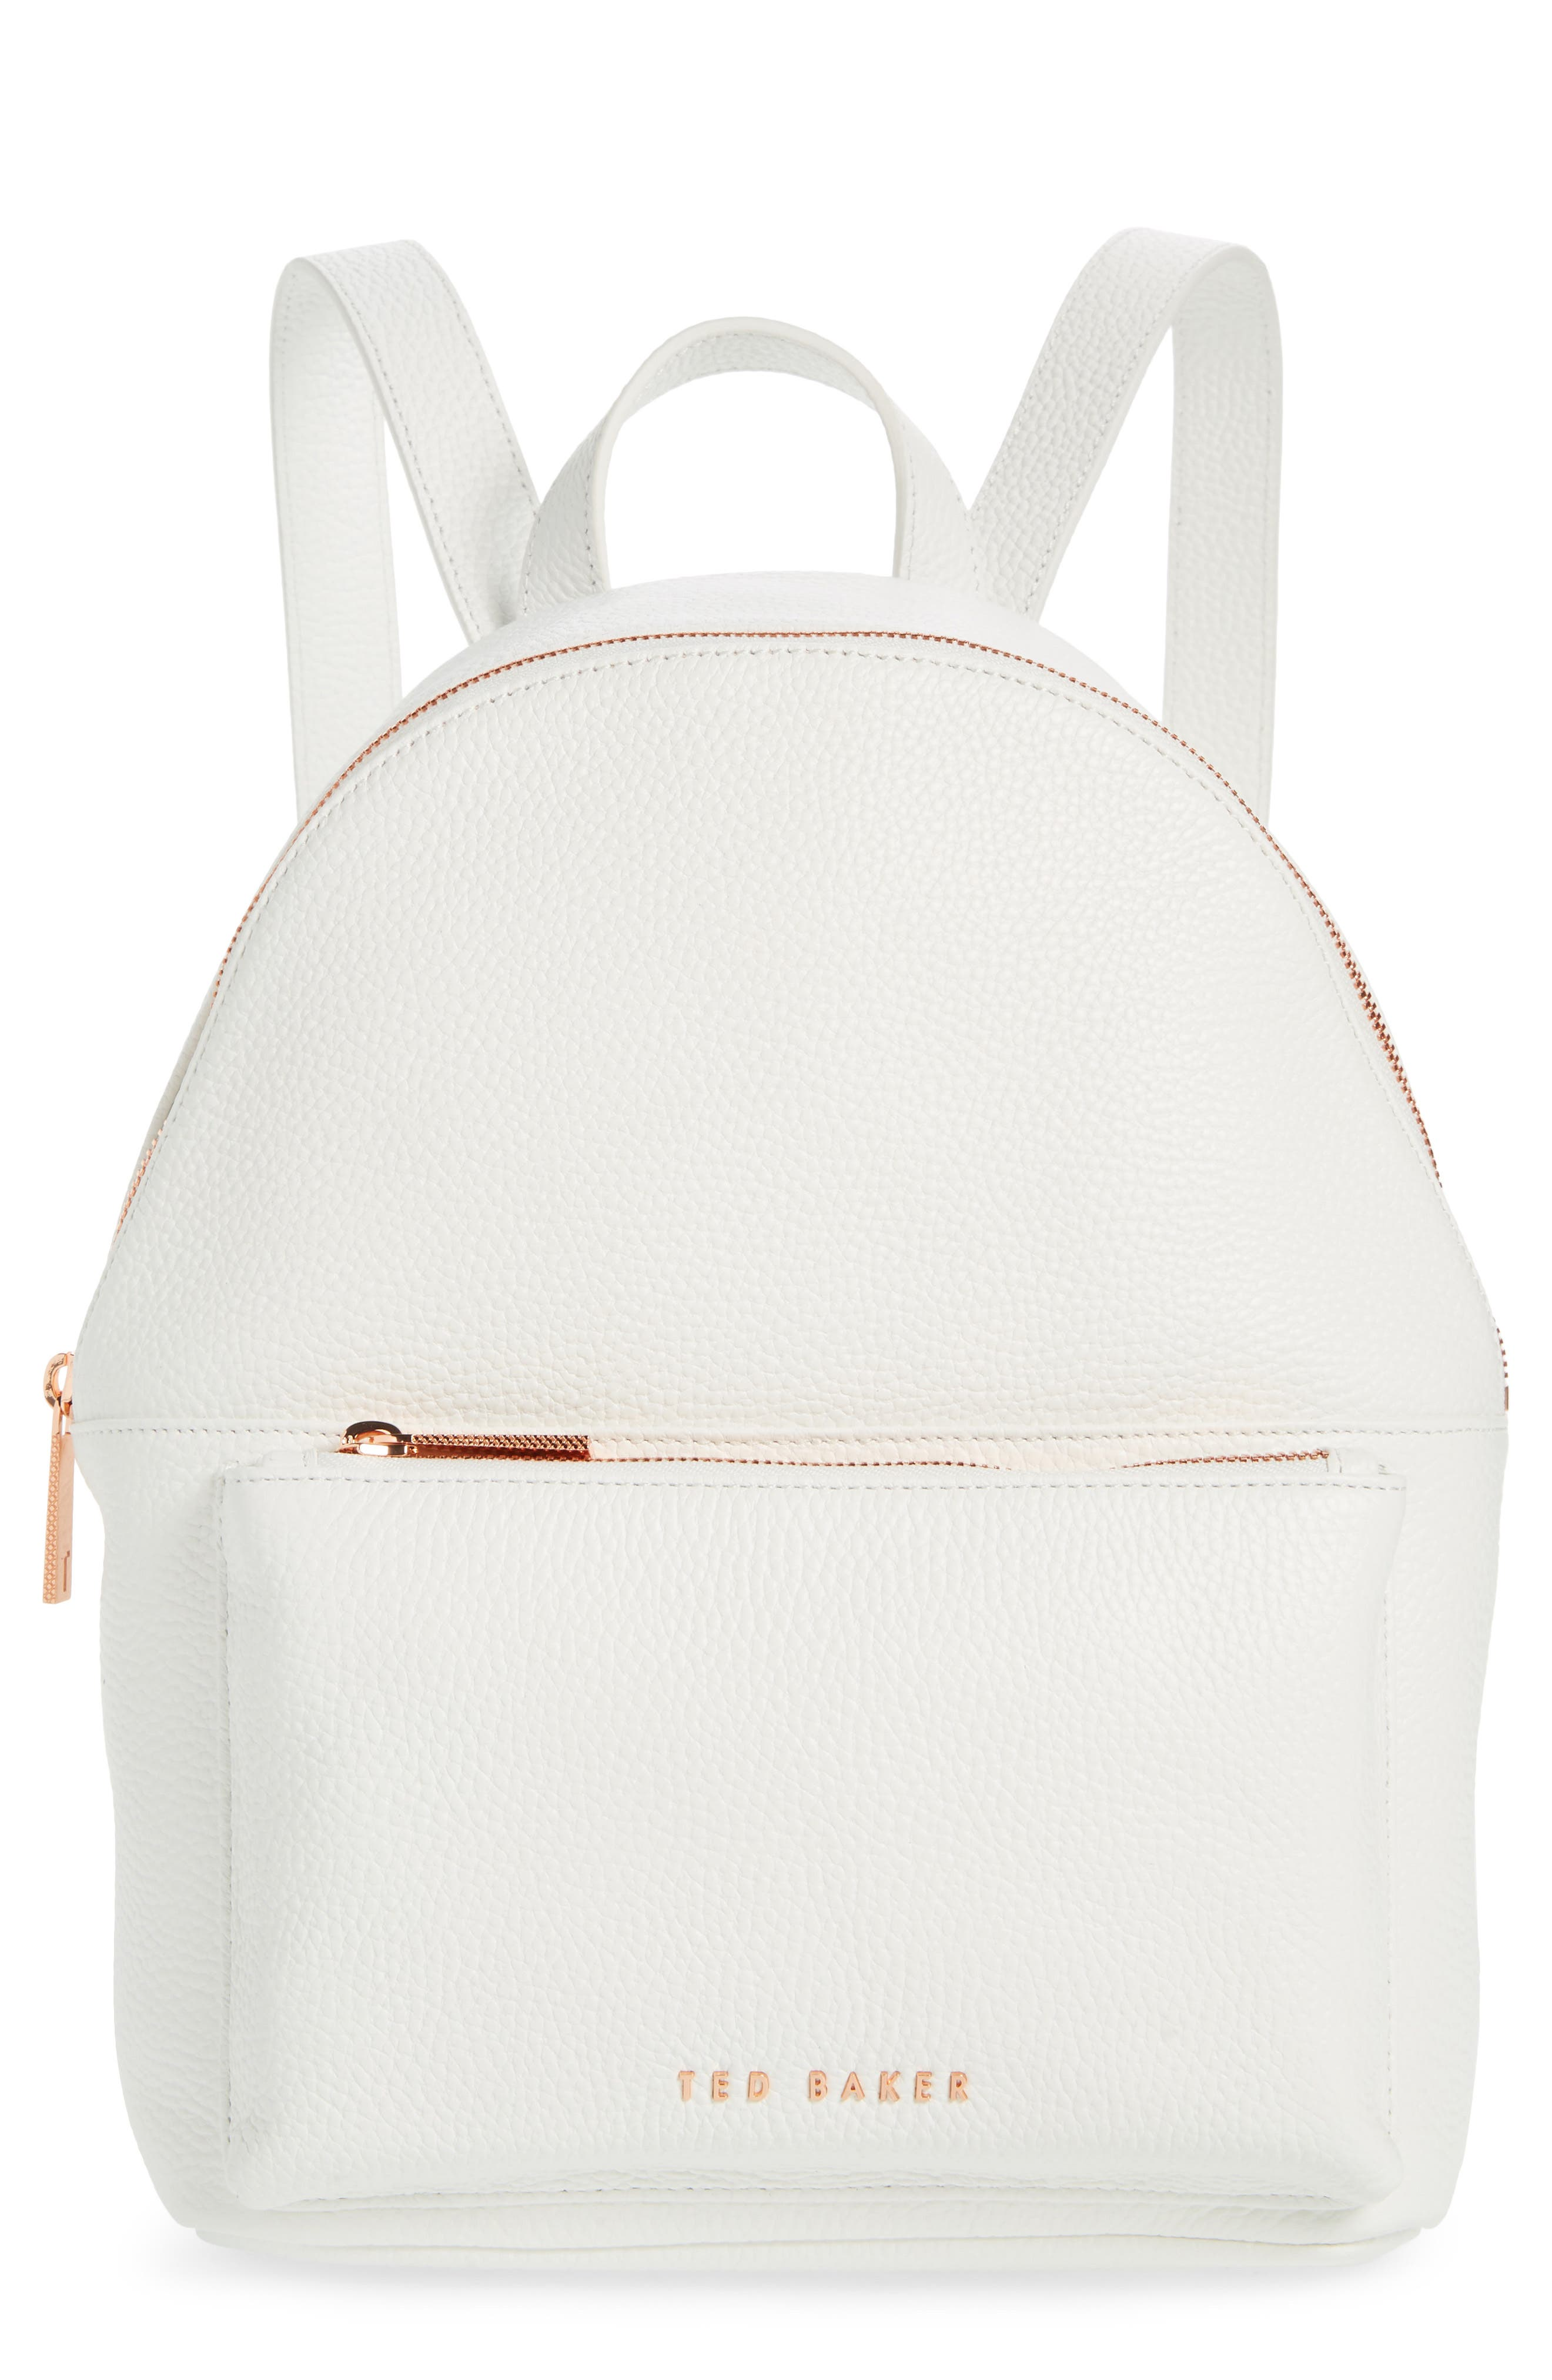 Pearen Leather Backpack,                         Main,                         color, White